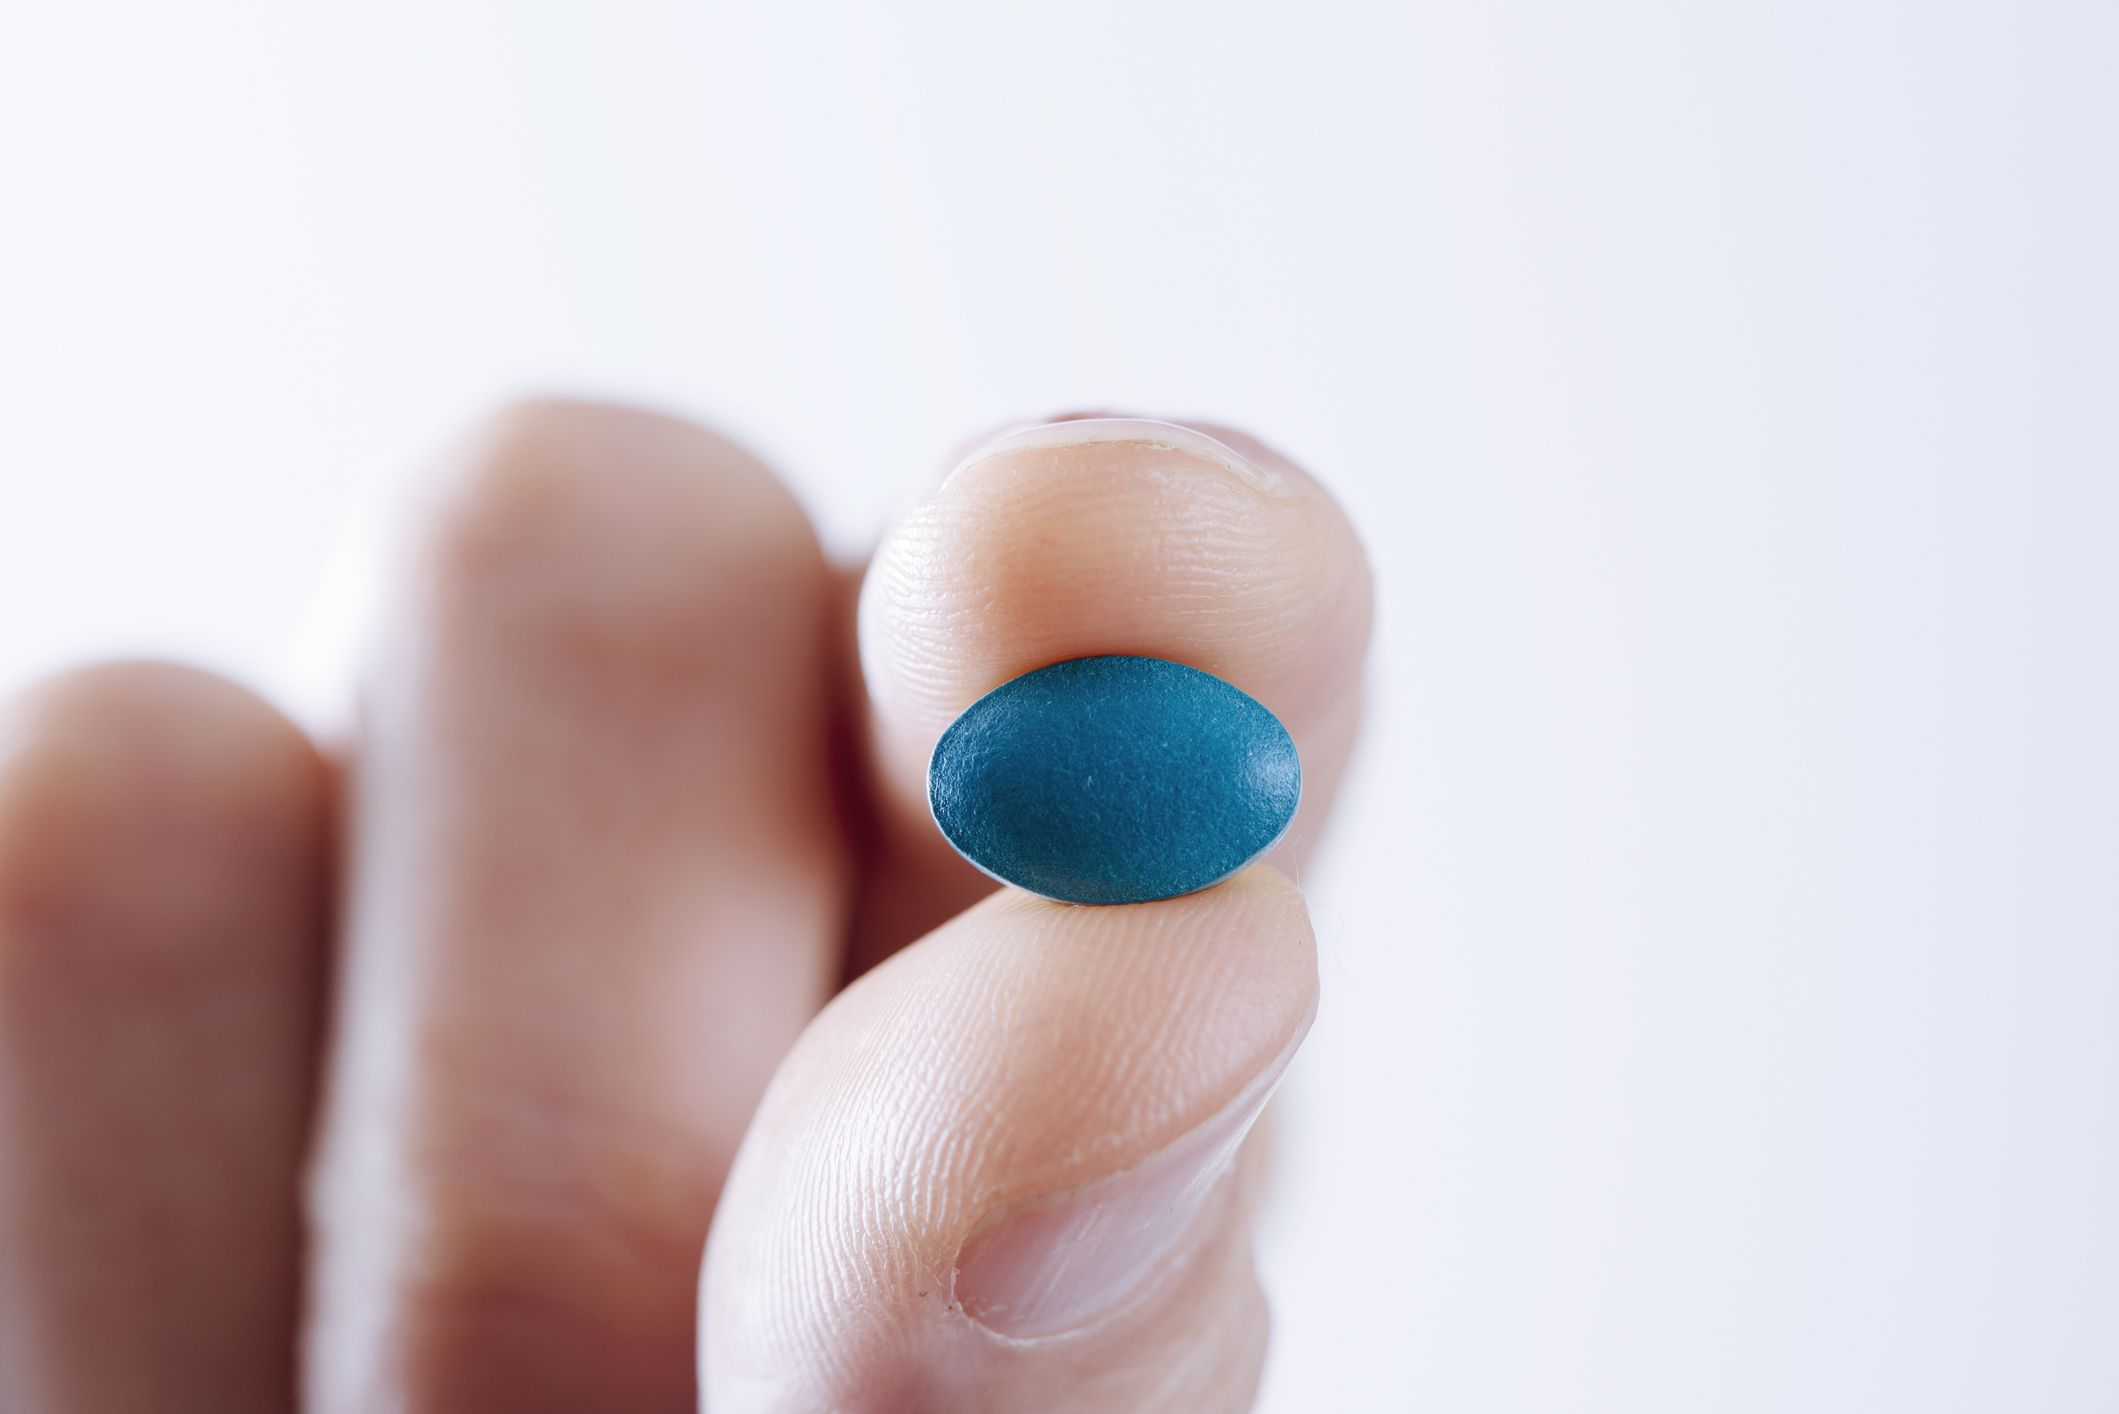 Viagra (sildenafil): how it works, and how long it lasts